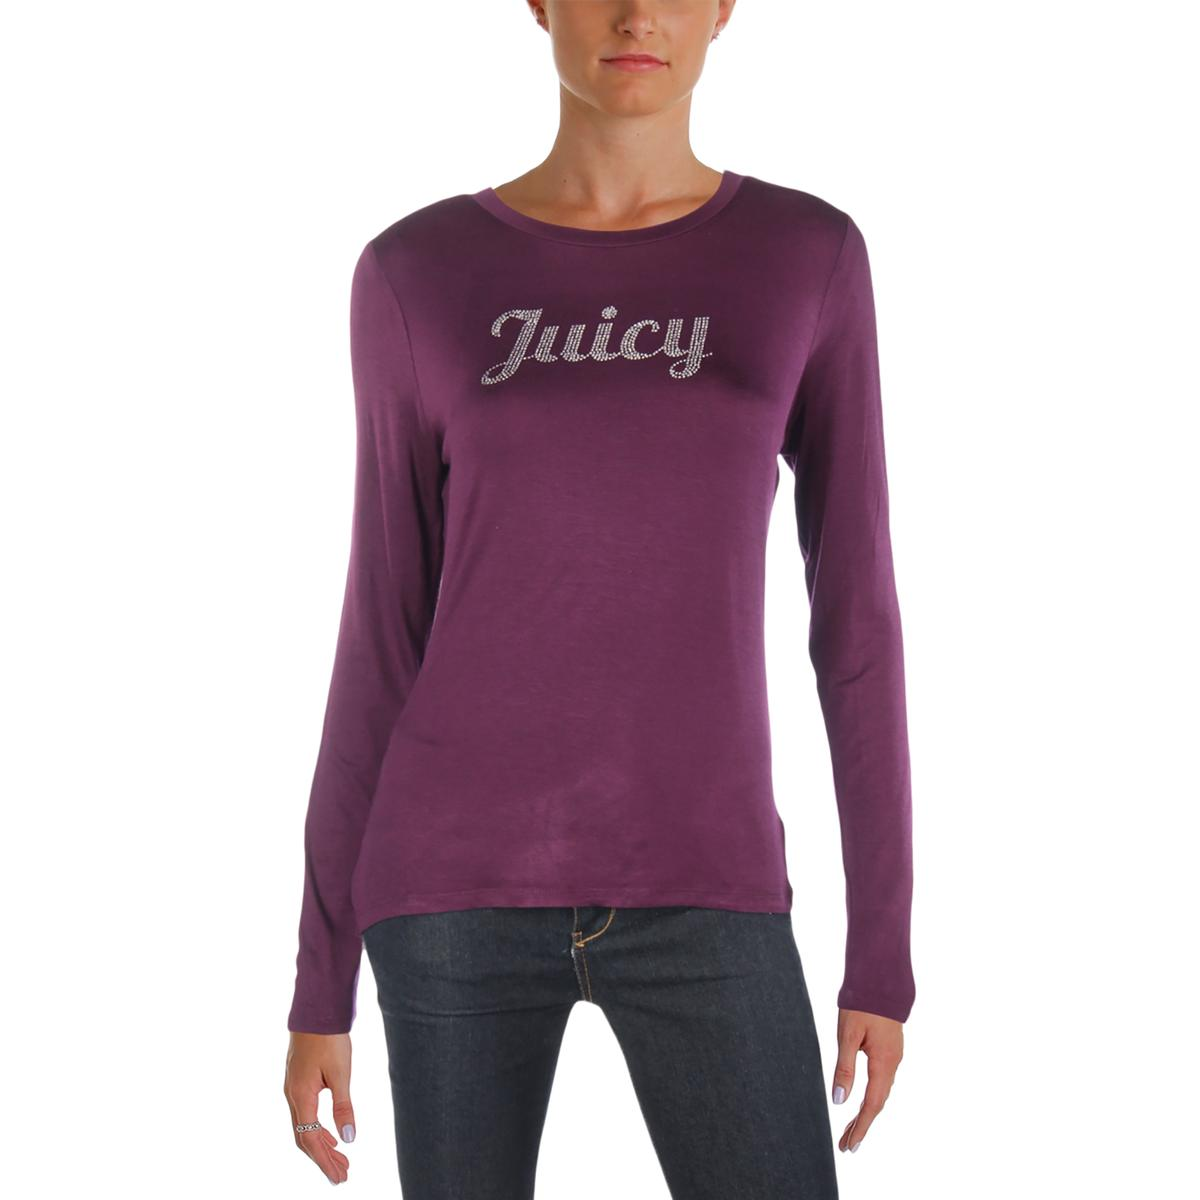 8cd49ed5017c Image is loading Juicy-Couture-Womens-Rhinestone-Logo-Long-Sleeves-Pullover-